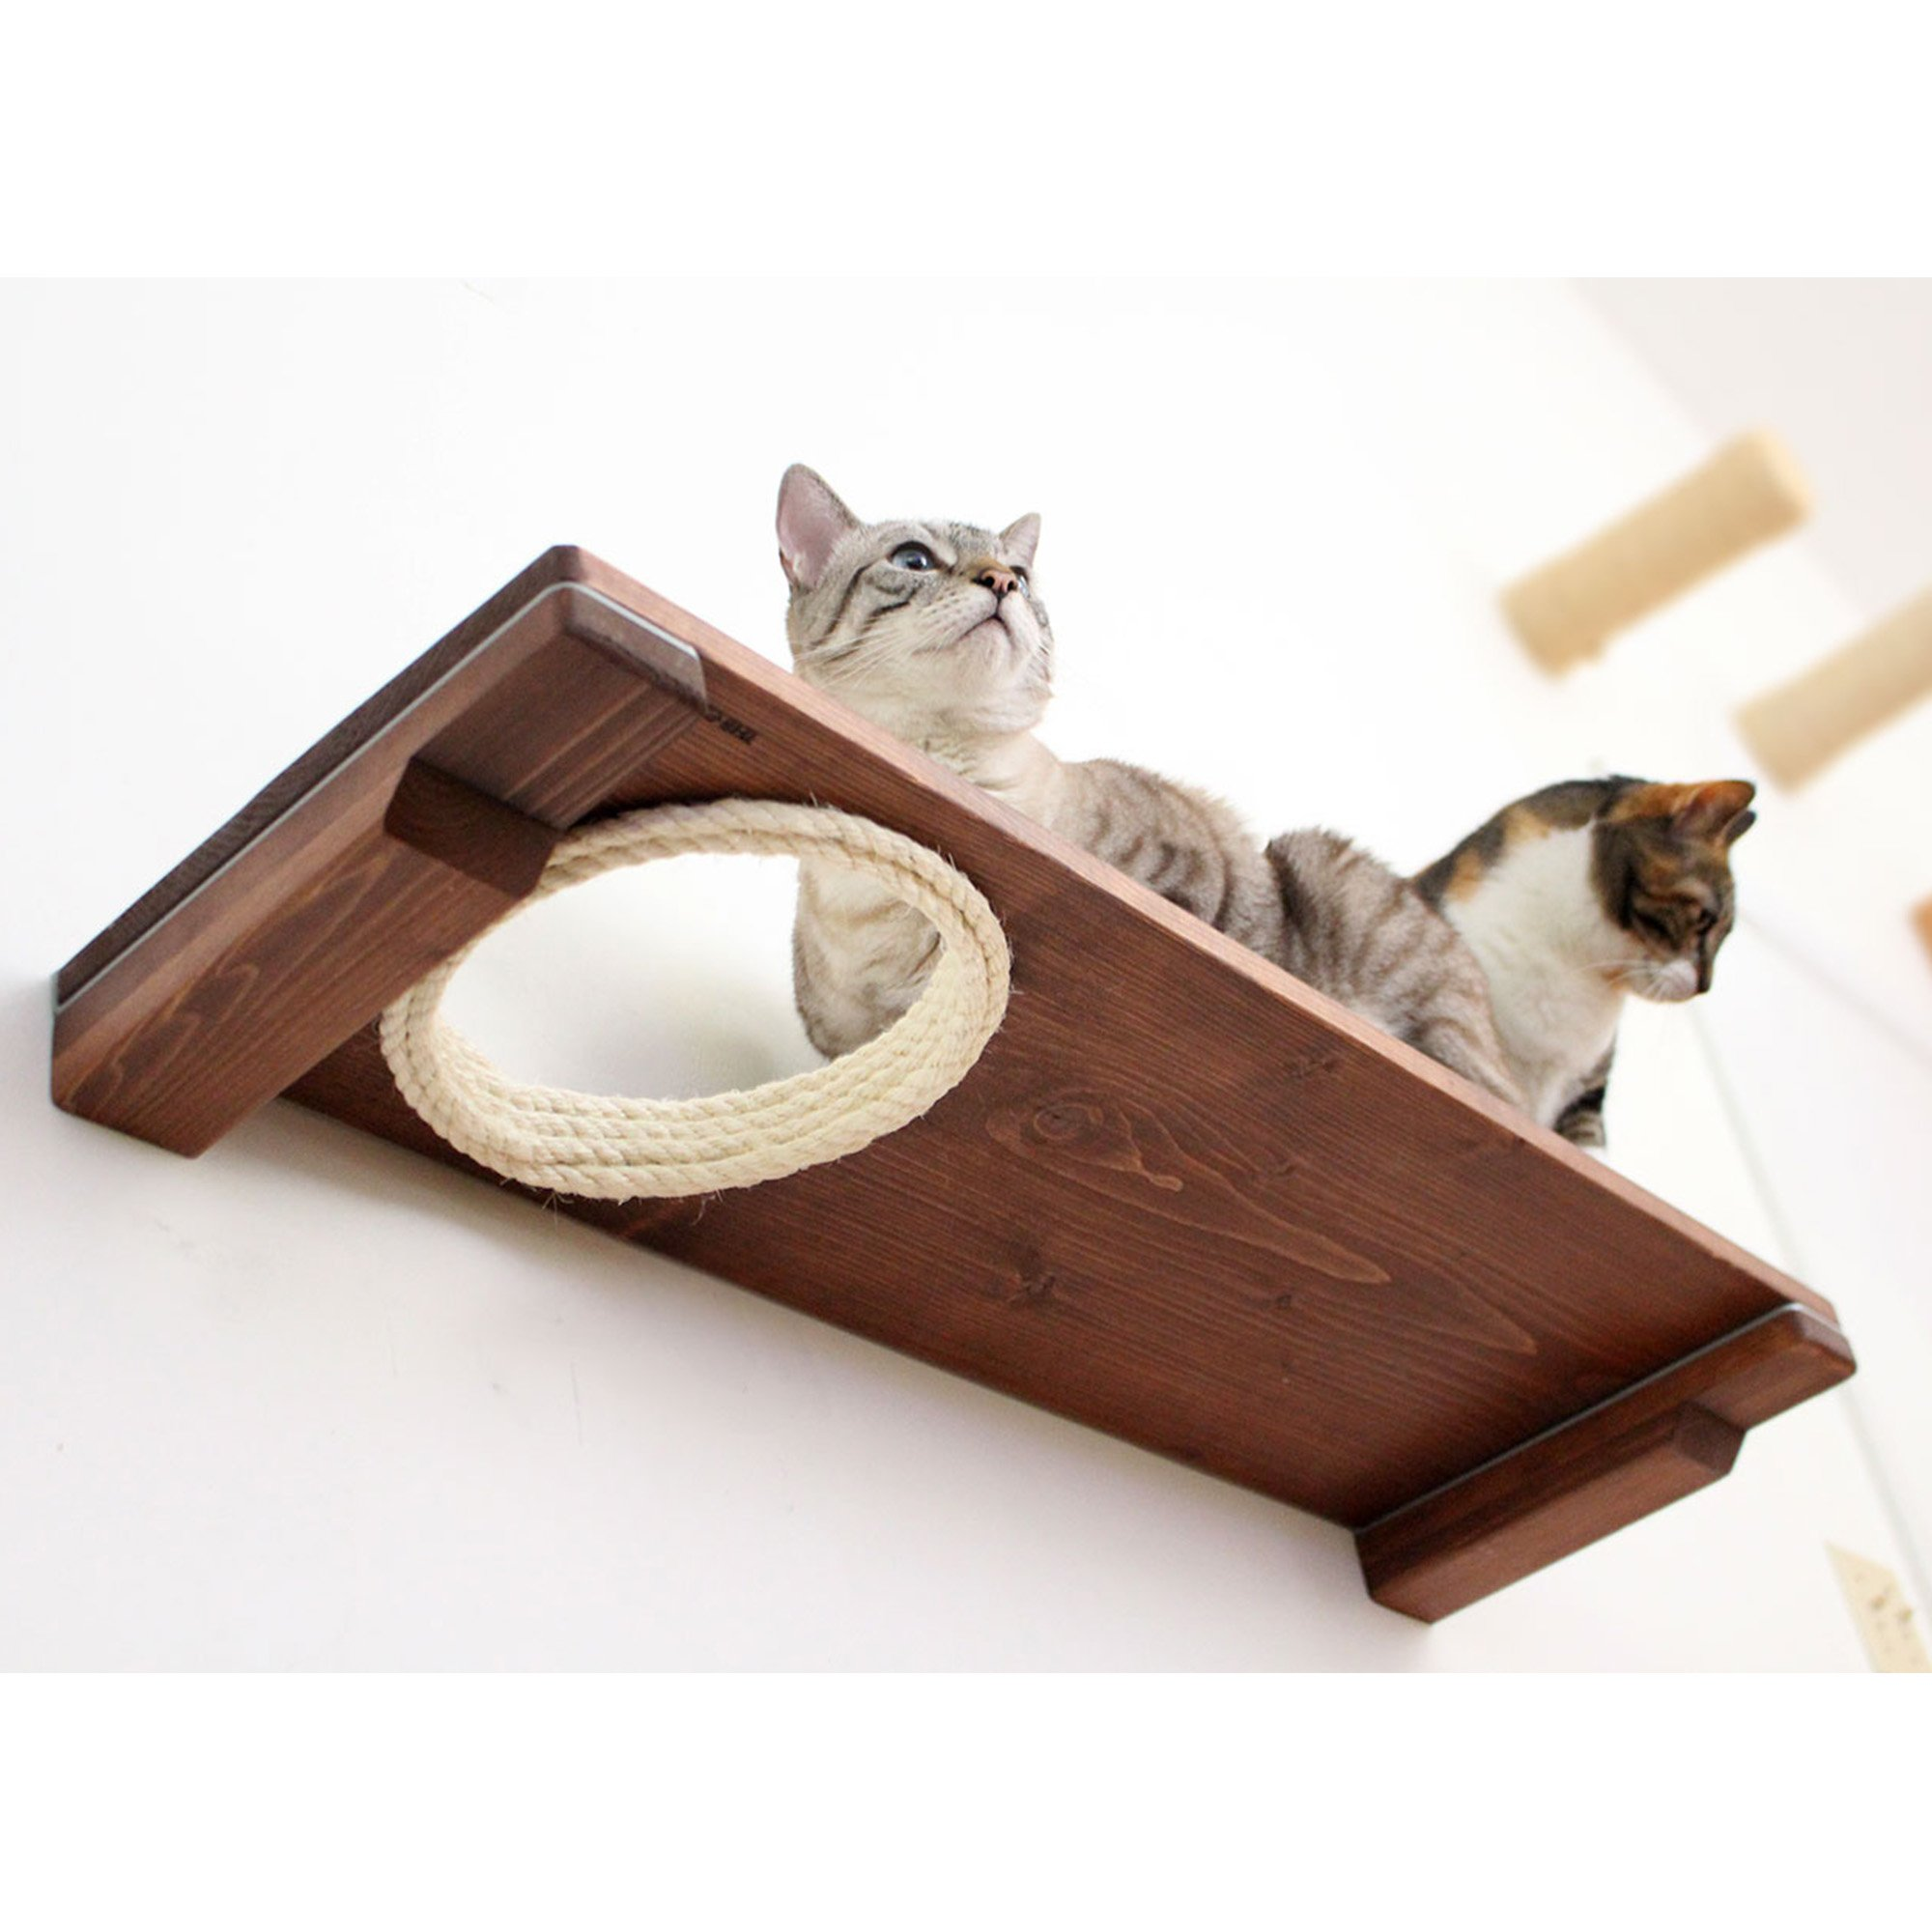 """Catastrophicreations The Cat Mod 34"""" Escape Hatch Shelf For Cats In English Chestnut, 34 In W X 3 In H, 8 Lb"""